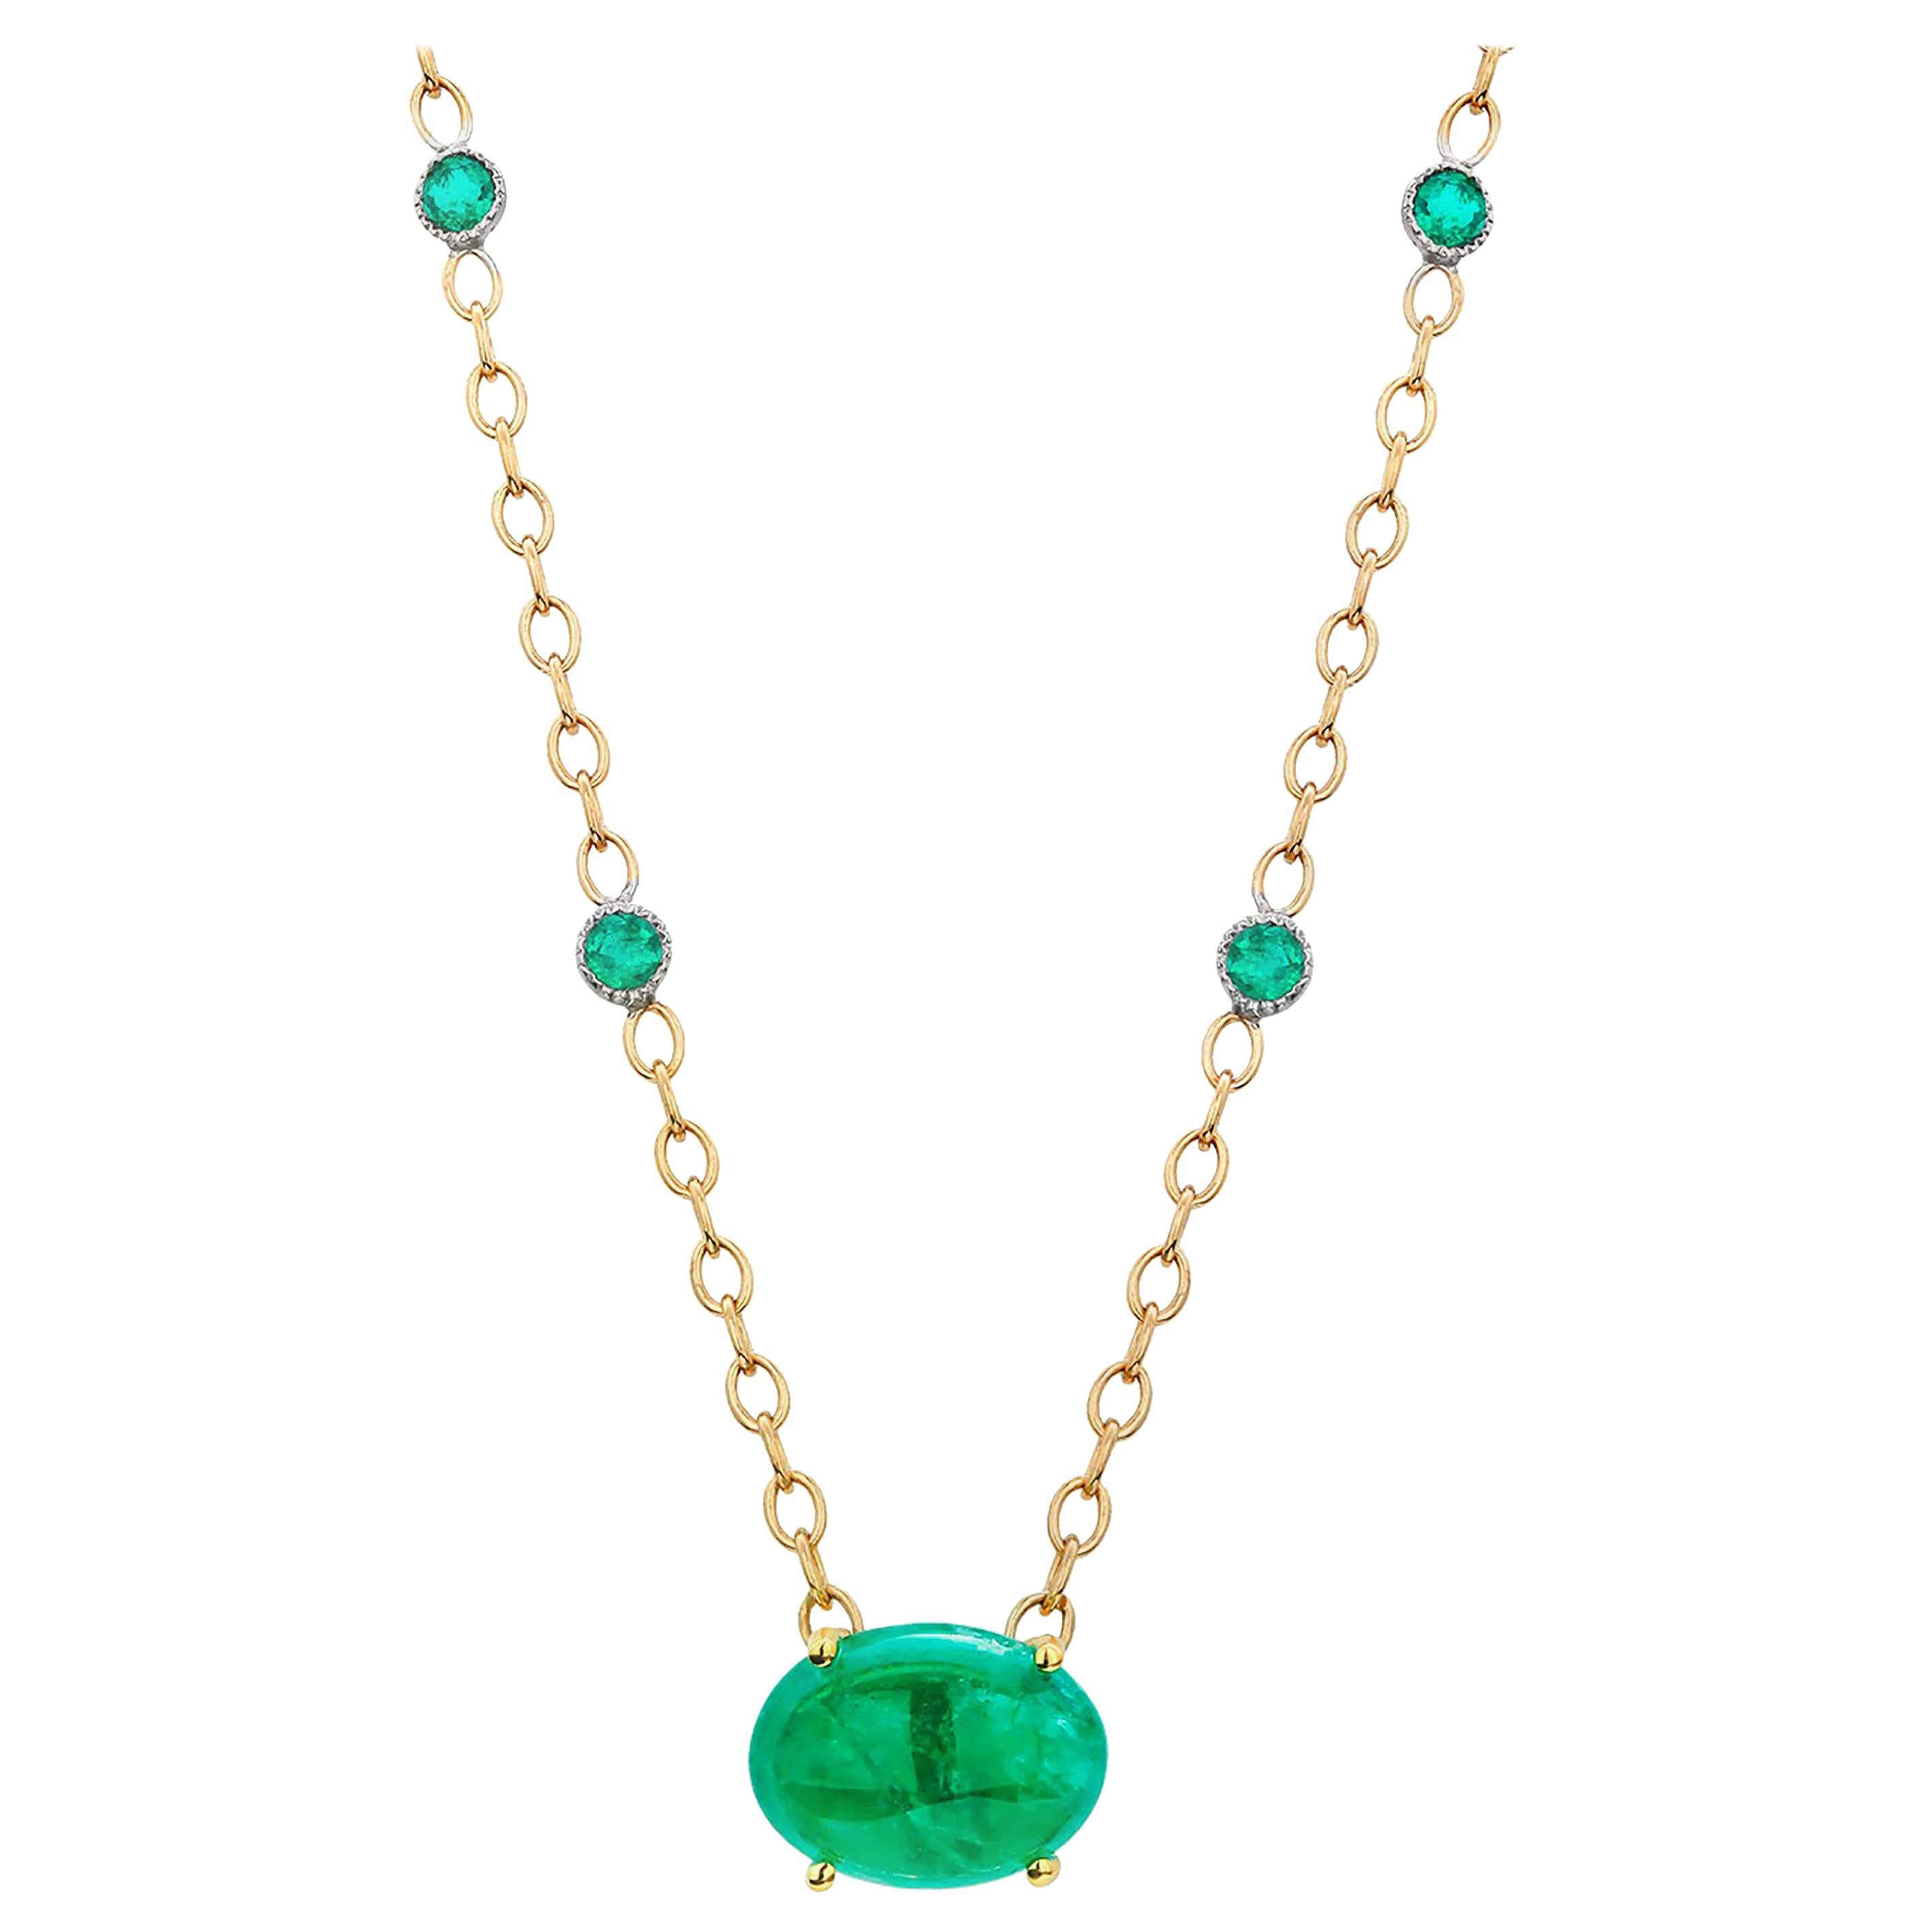 Colombia Cabochon Emerald 18 Karat Yellow Gold Pendant Necklace